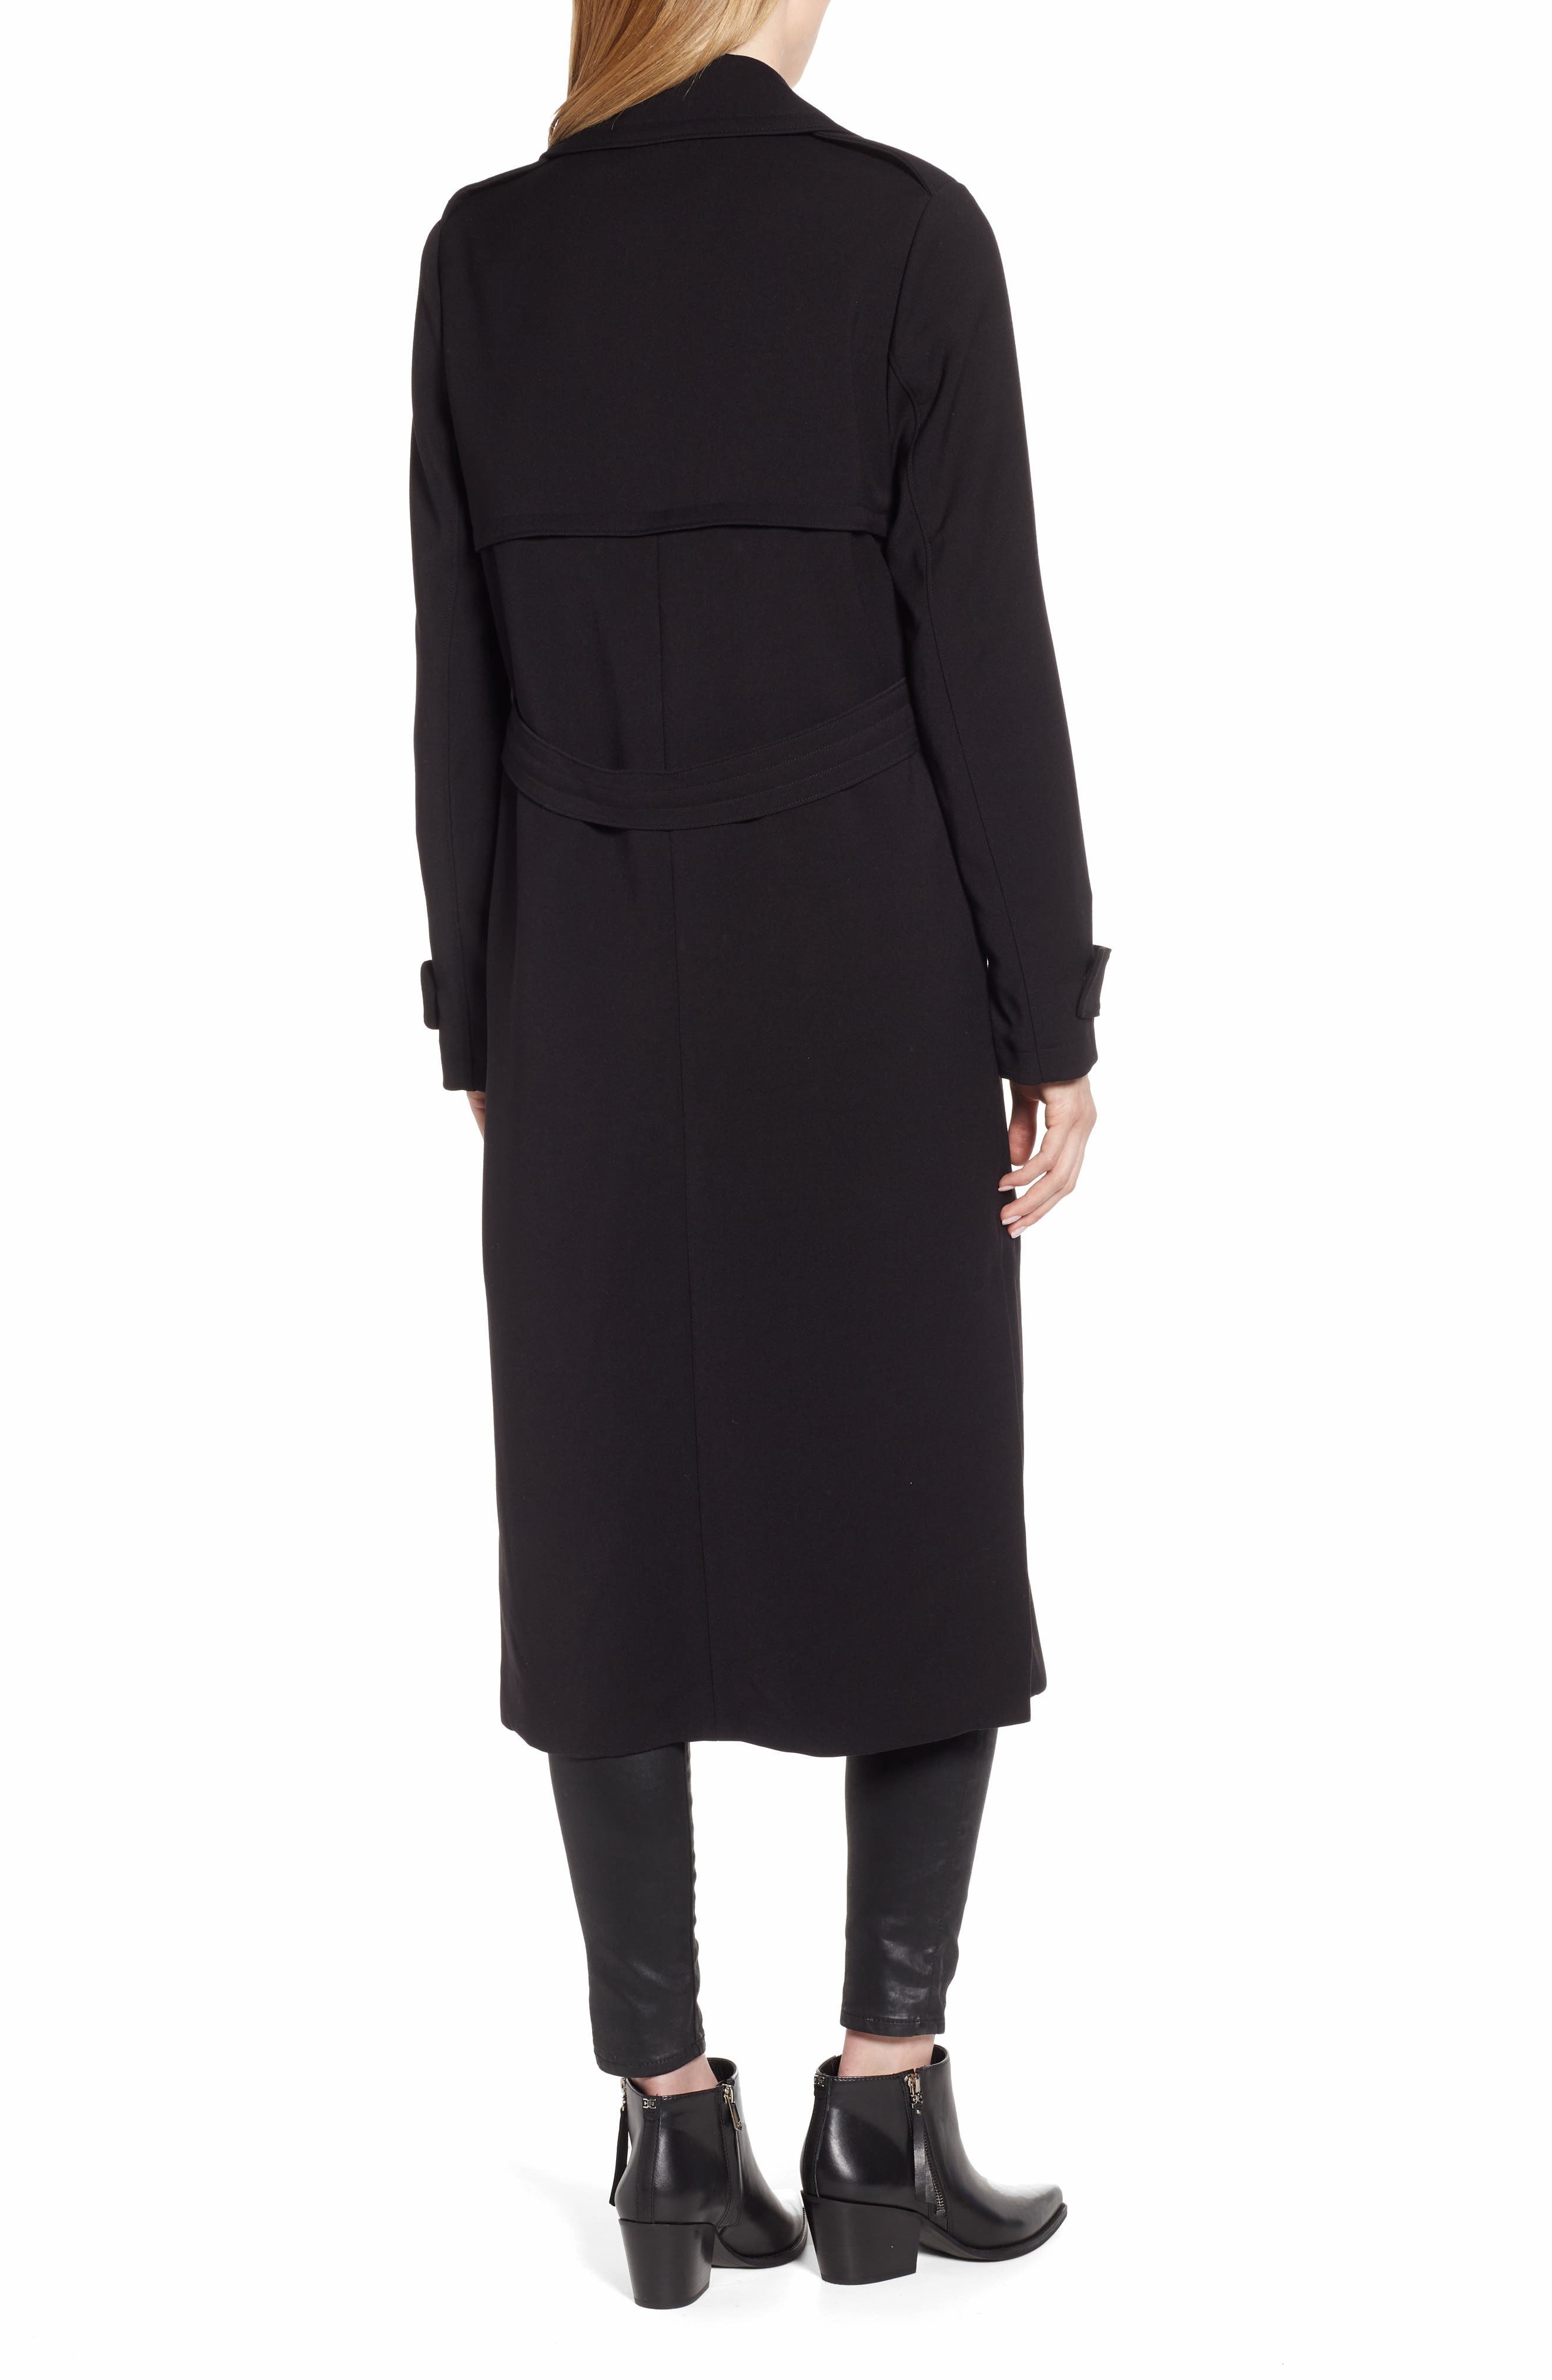 KENNETH COLE NEW YORK, Ponte Trench Coat, Alternate thumbnail 2, color, BLACK